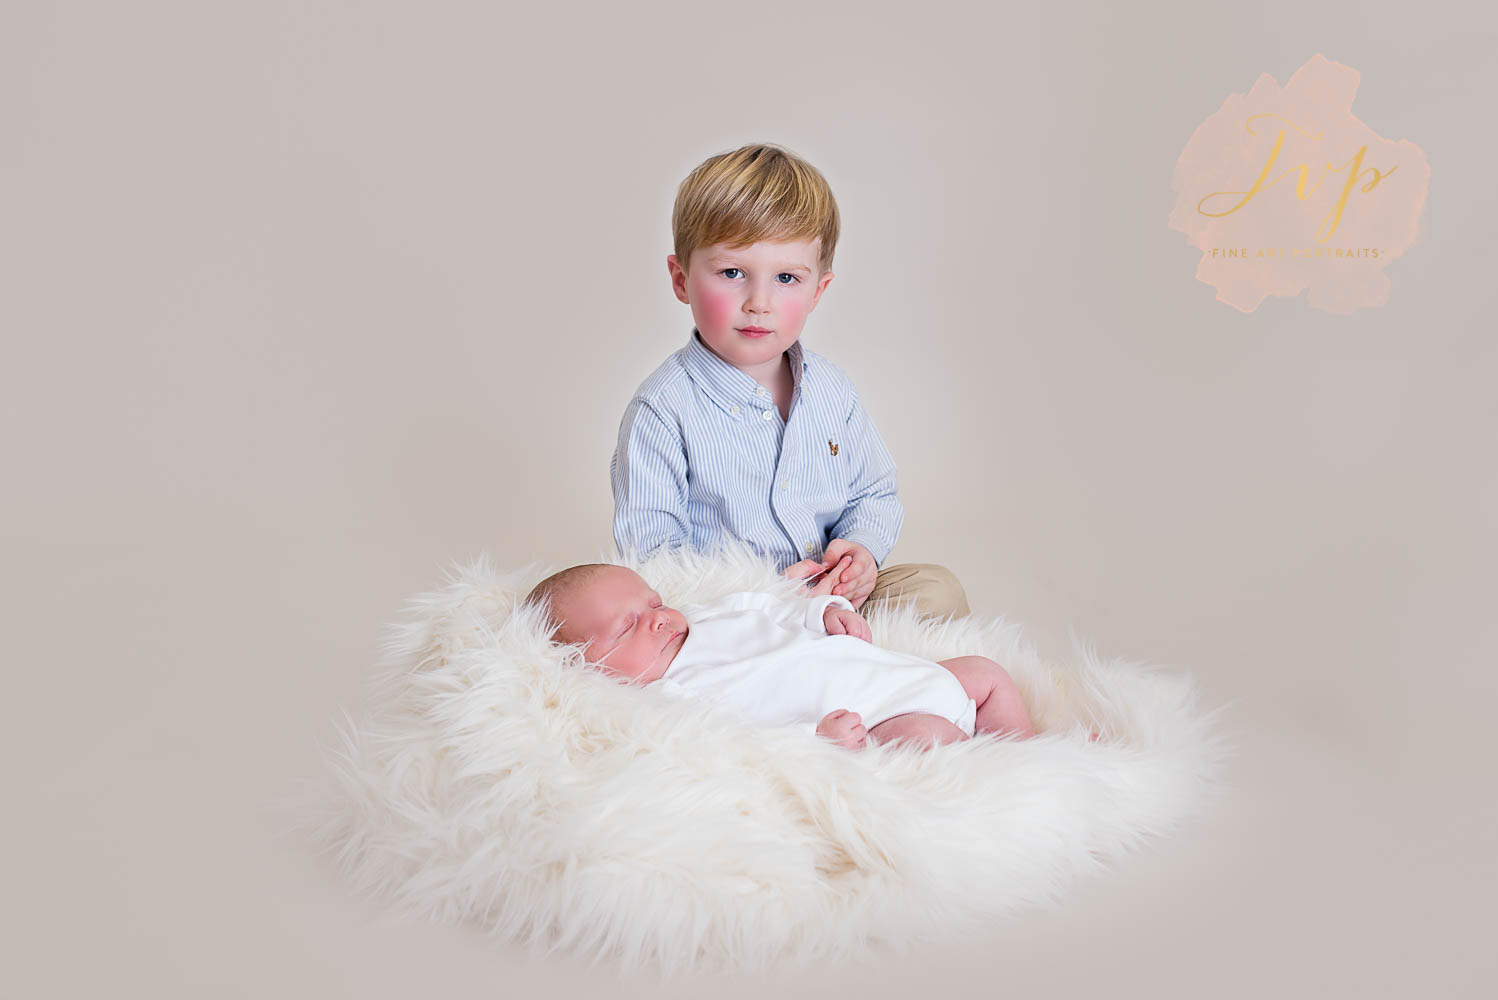 big brother with new baby newborn photographer near glasgow